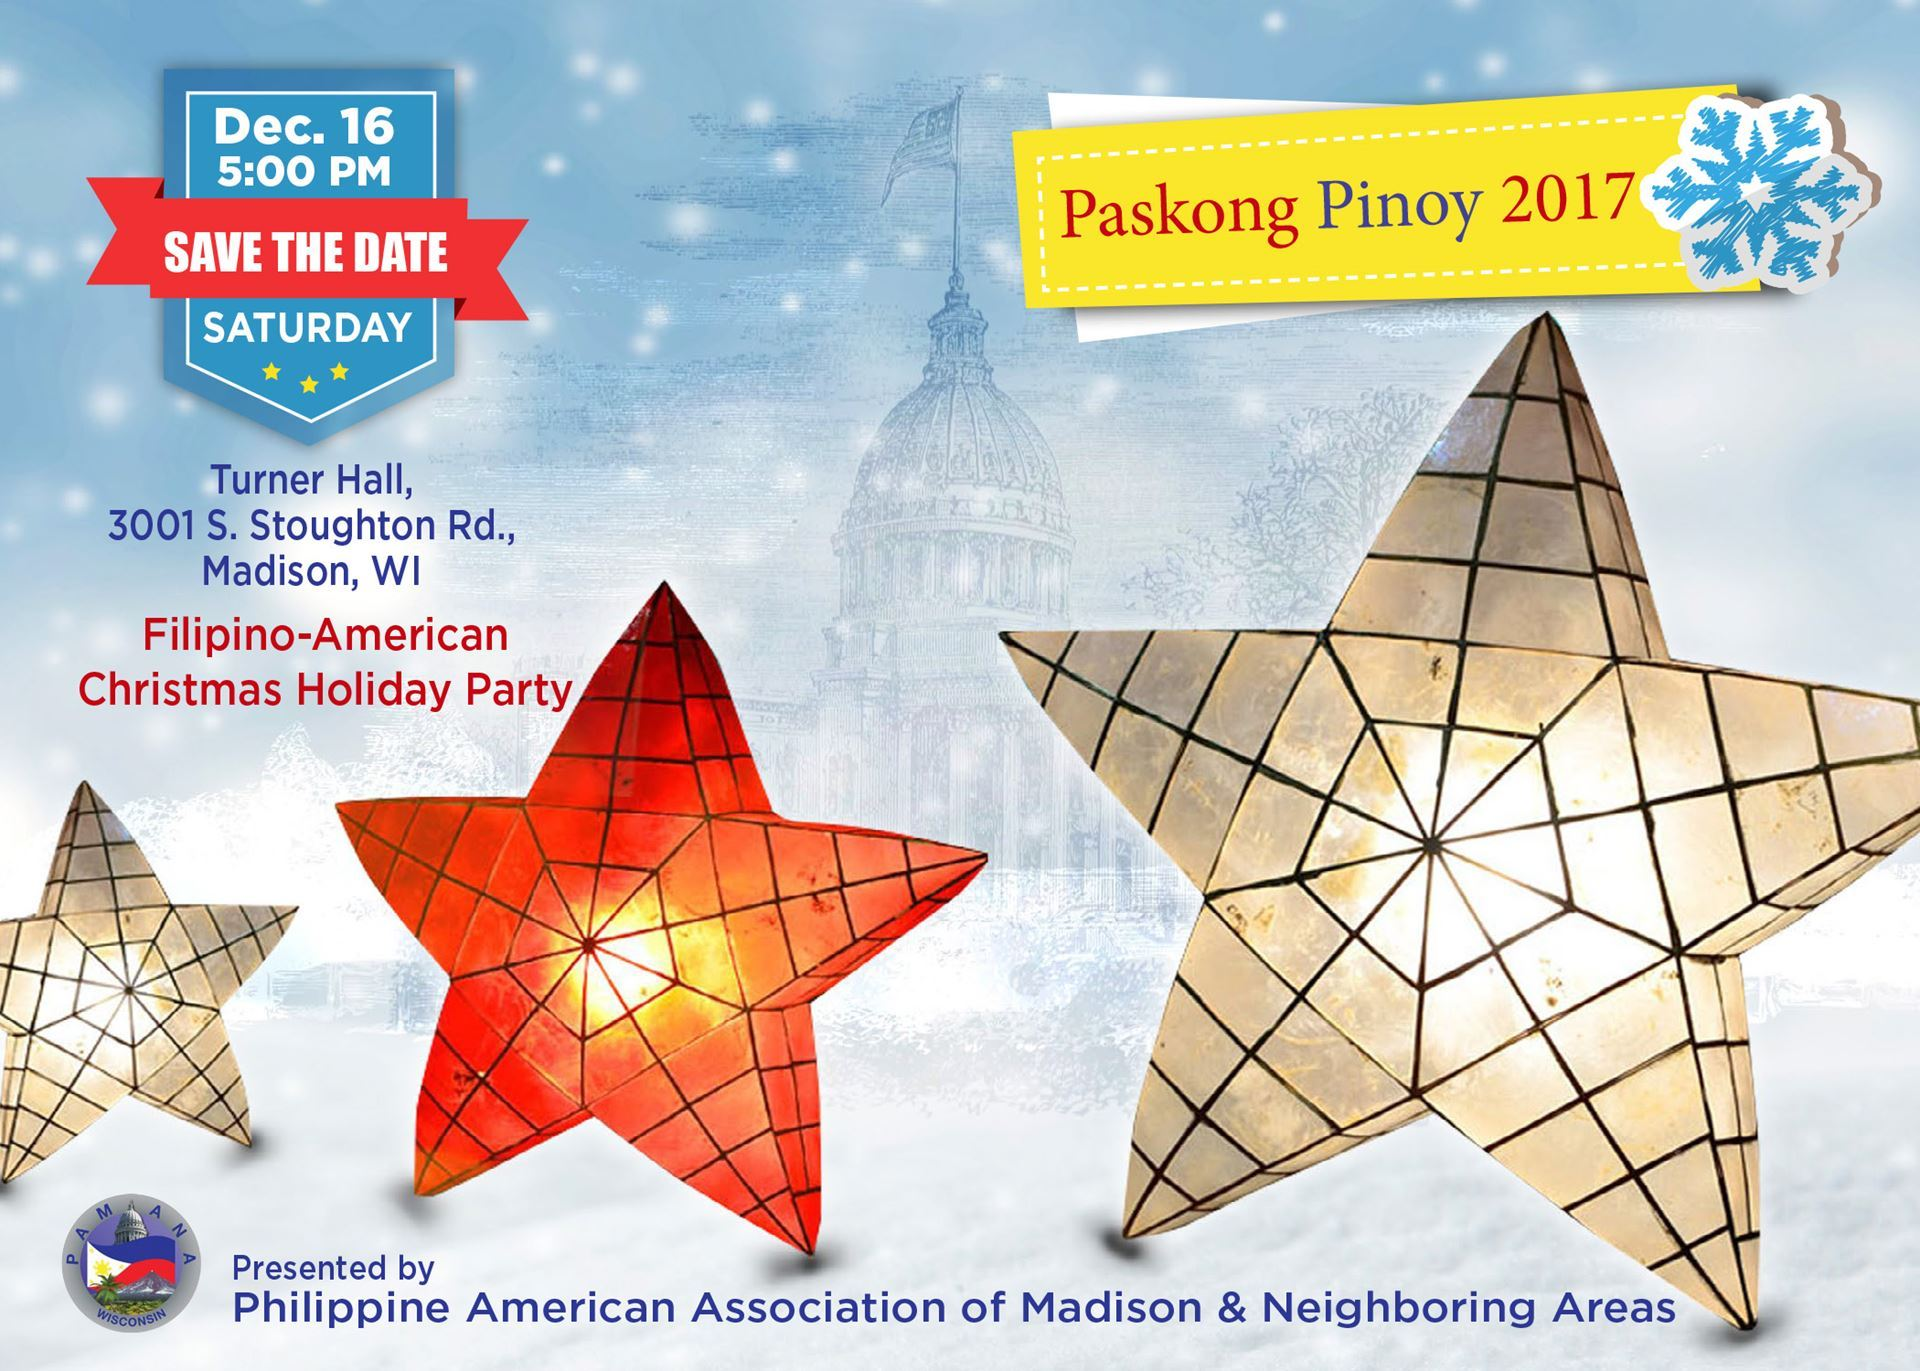 filipino americans in the madison area will come together to celebrate paskong pinoy honoring traditions and people in a culture rich gathering with song - Filipino Christmas Star